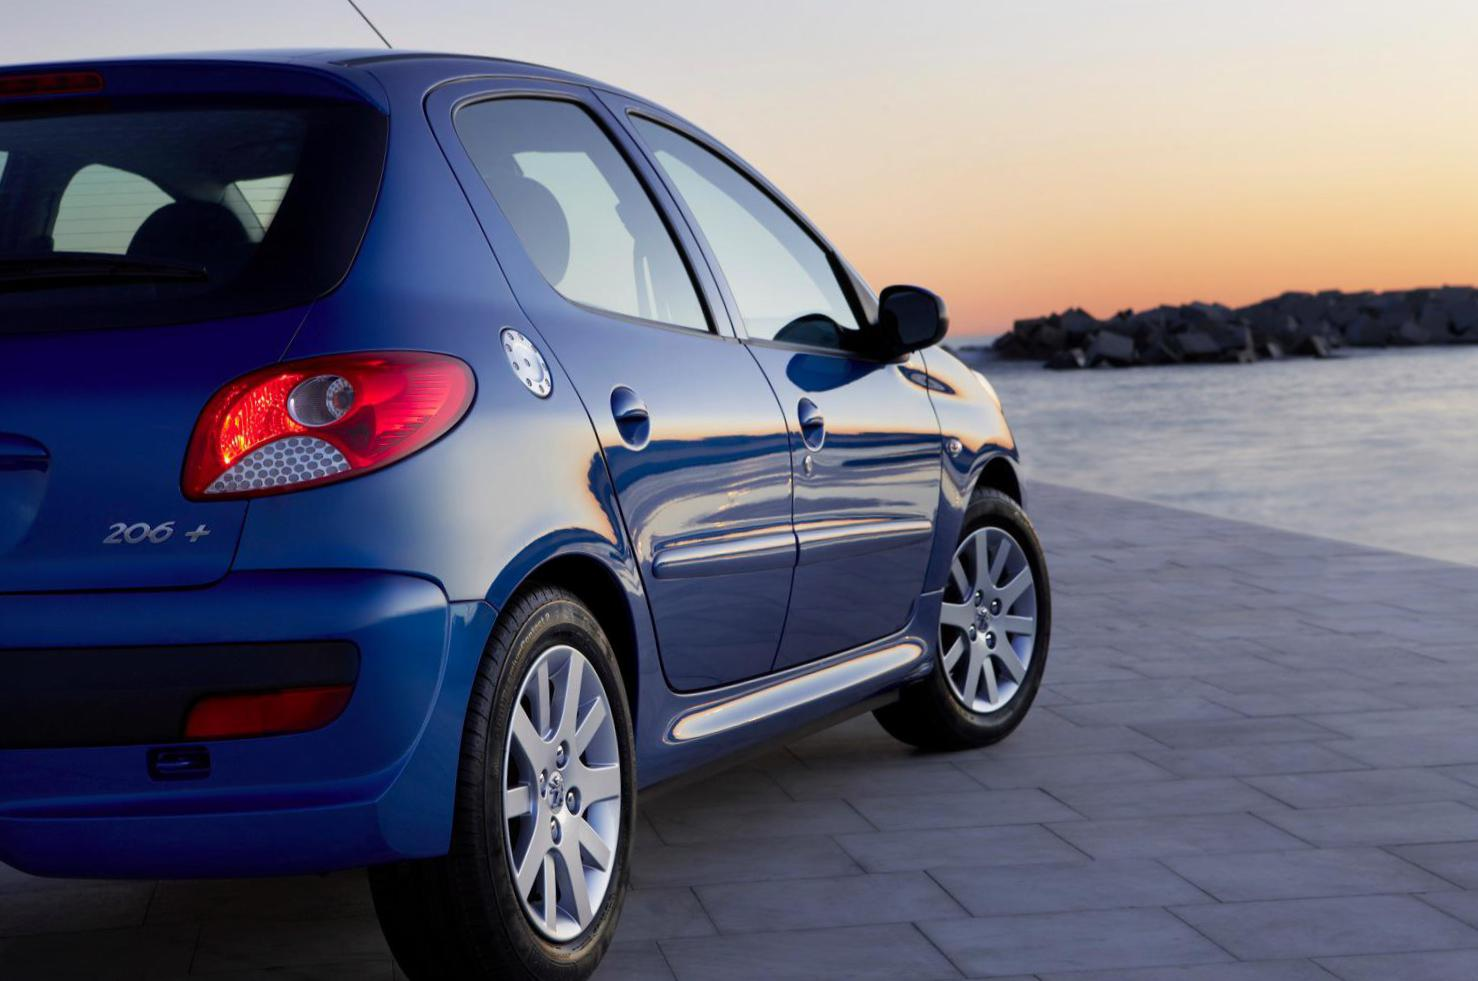 Peugeot 206 5 doors reviews 2015